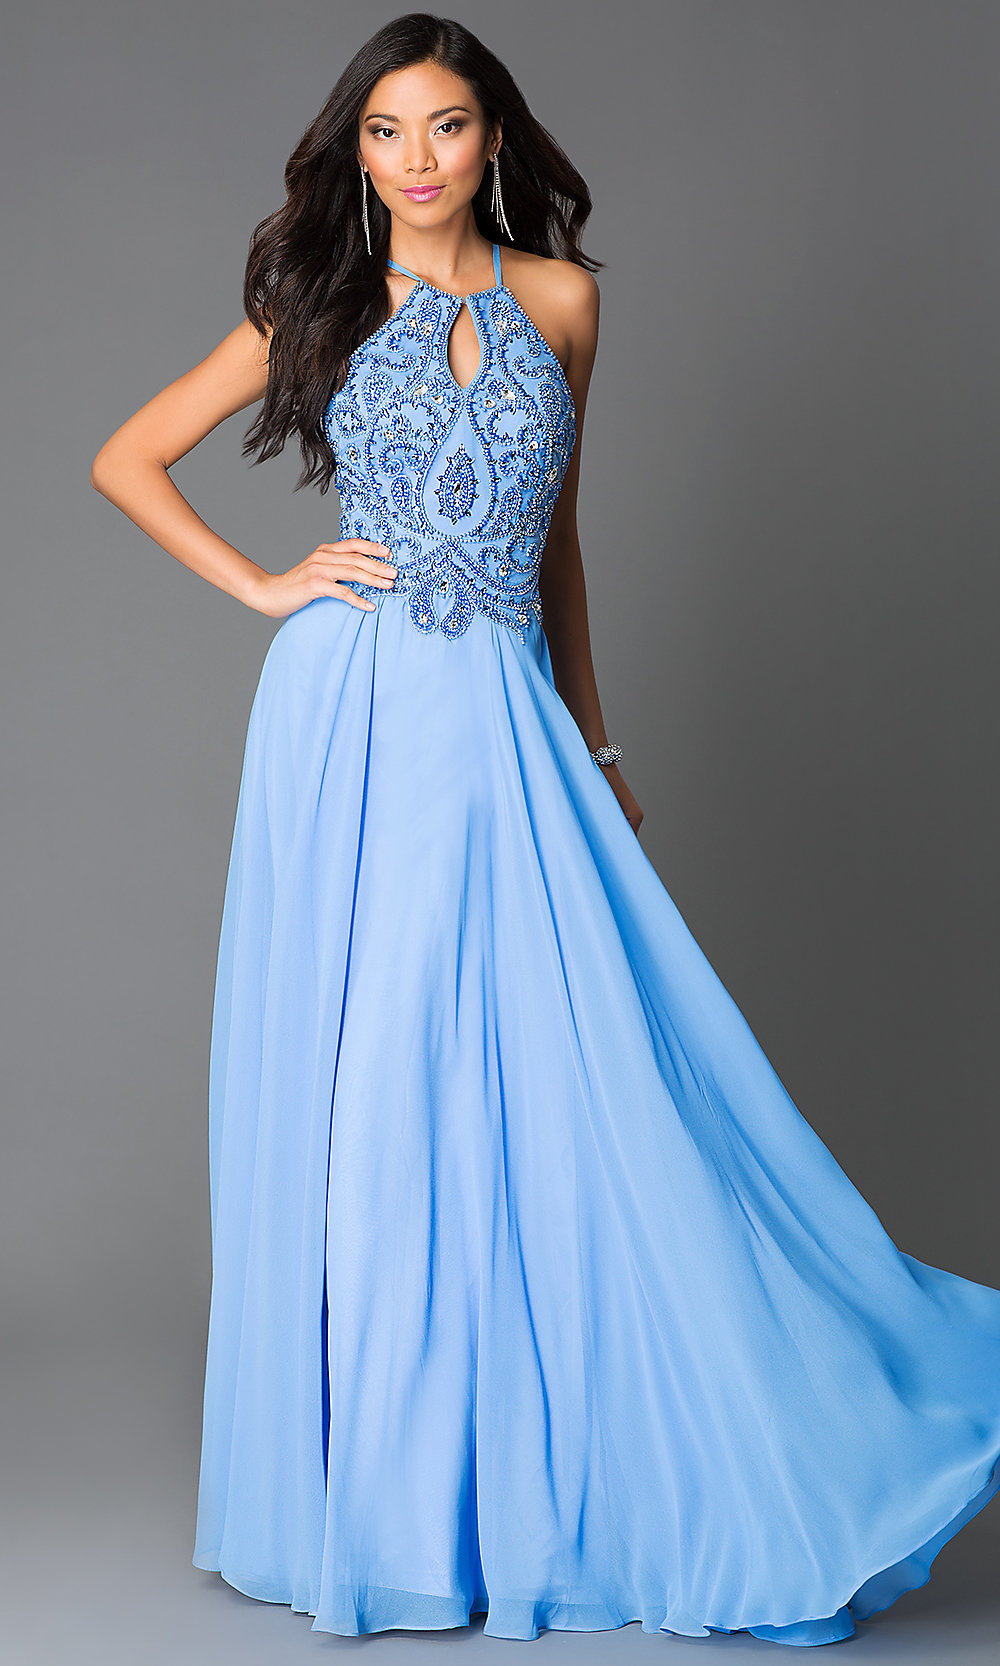 Beaded Open-Back Long Blue Prom Dress - PromGirl